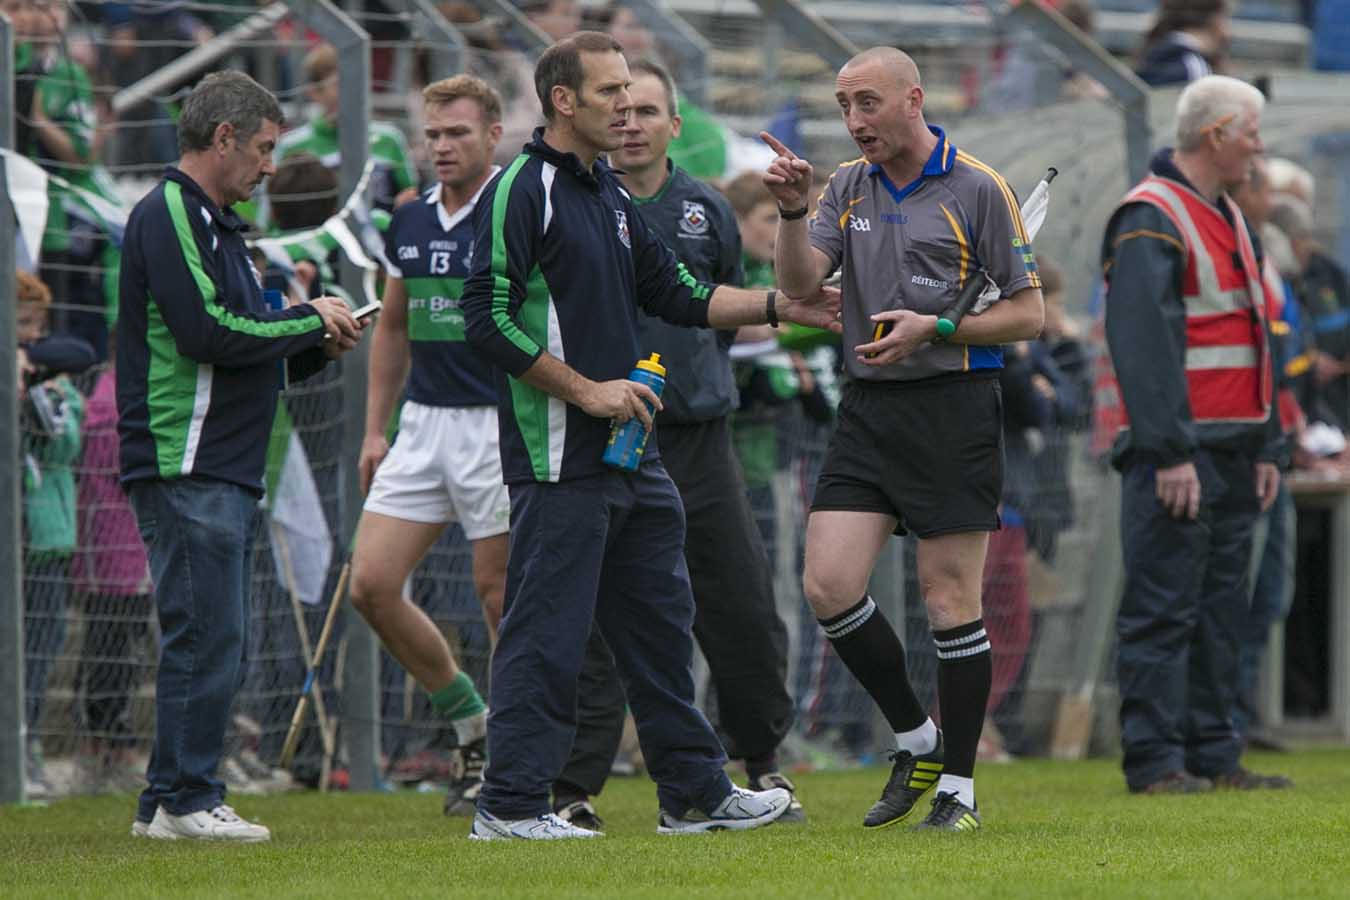 Top Wicklow and Intercounty referee assaulted as he left the field of play  in Hollywood yesterday – WicklowNews